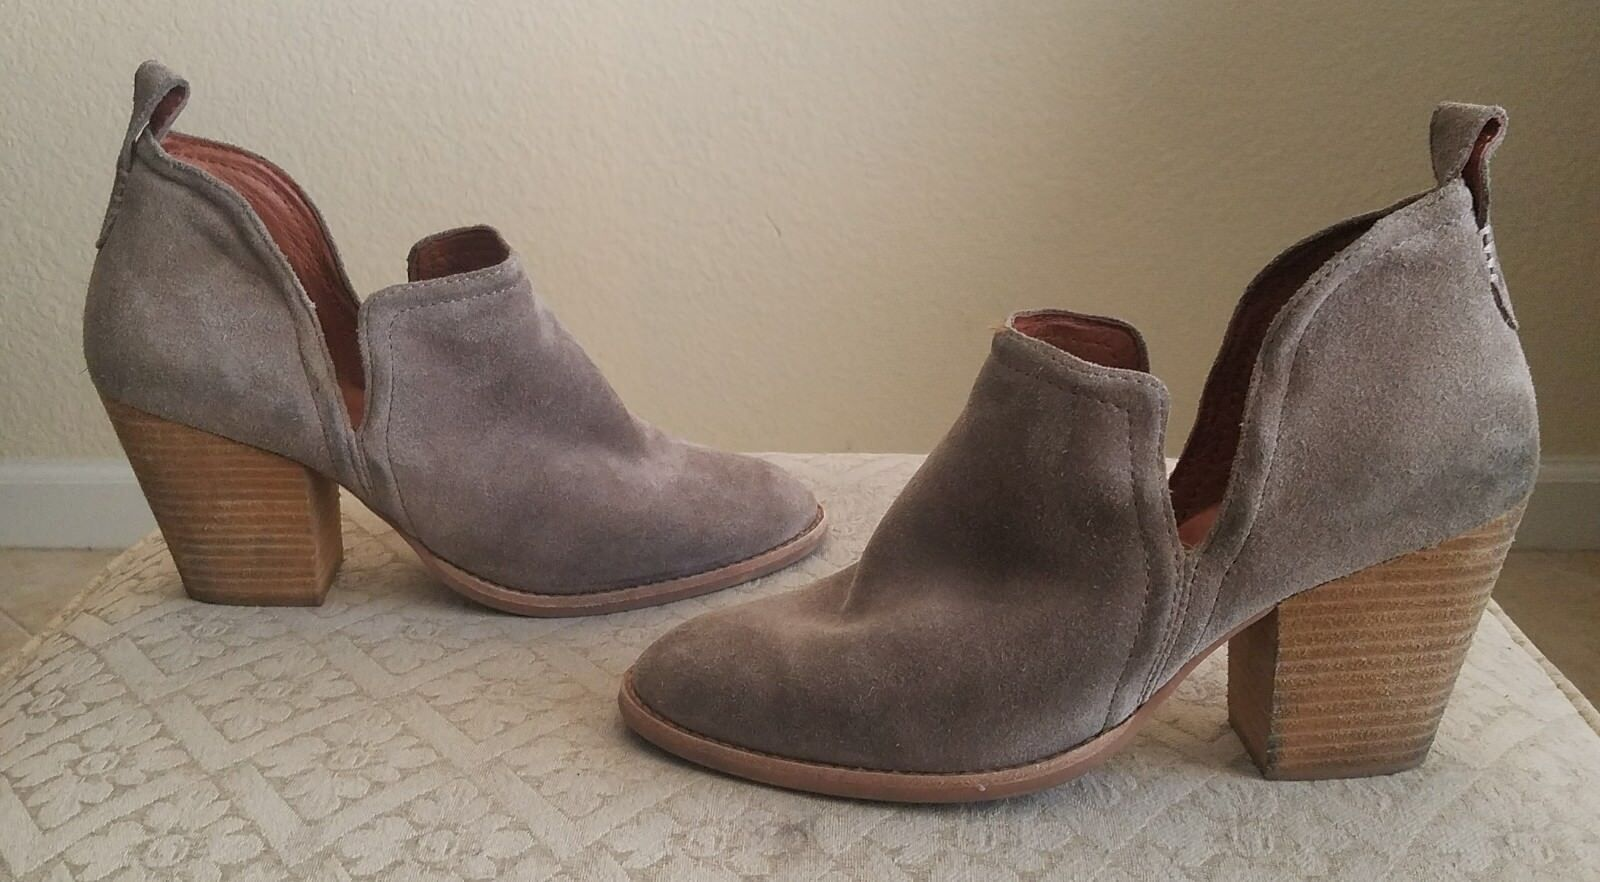 JEFFREY CAMPBELL ROSALEE ANKLE BOOTIE TAUPE SUEDE SIZE 10